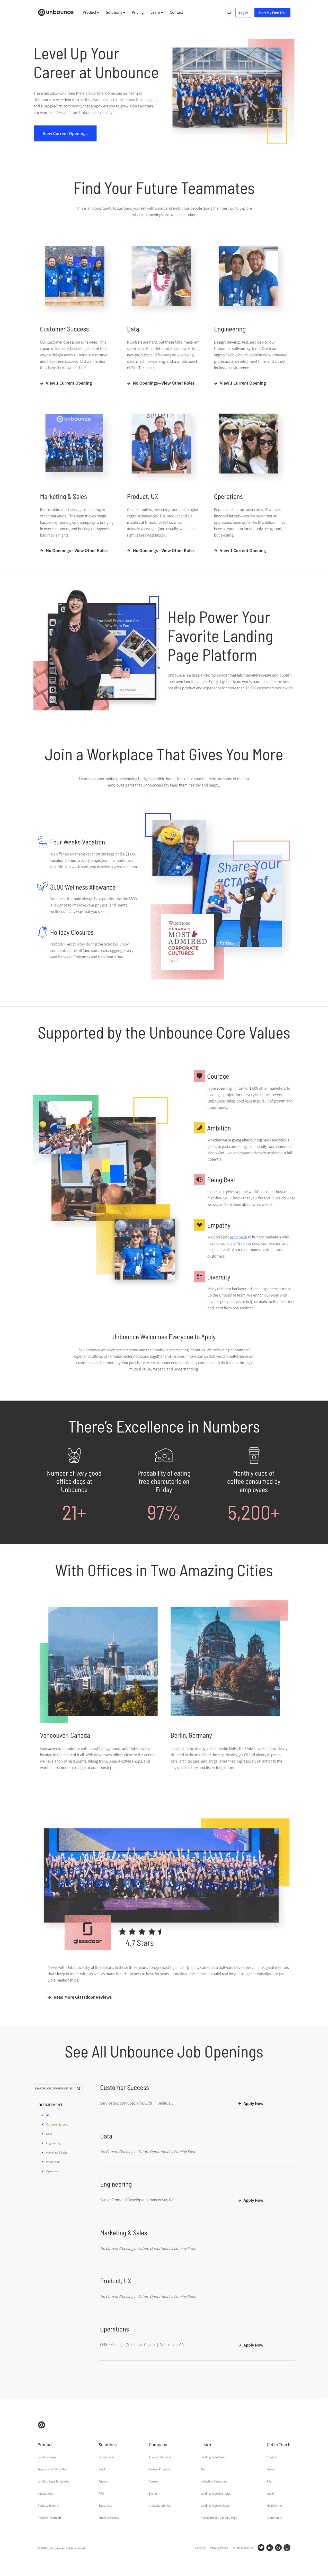 Unbounce Careers Page